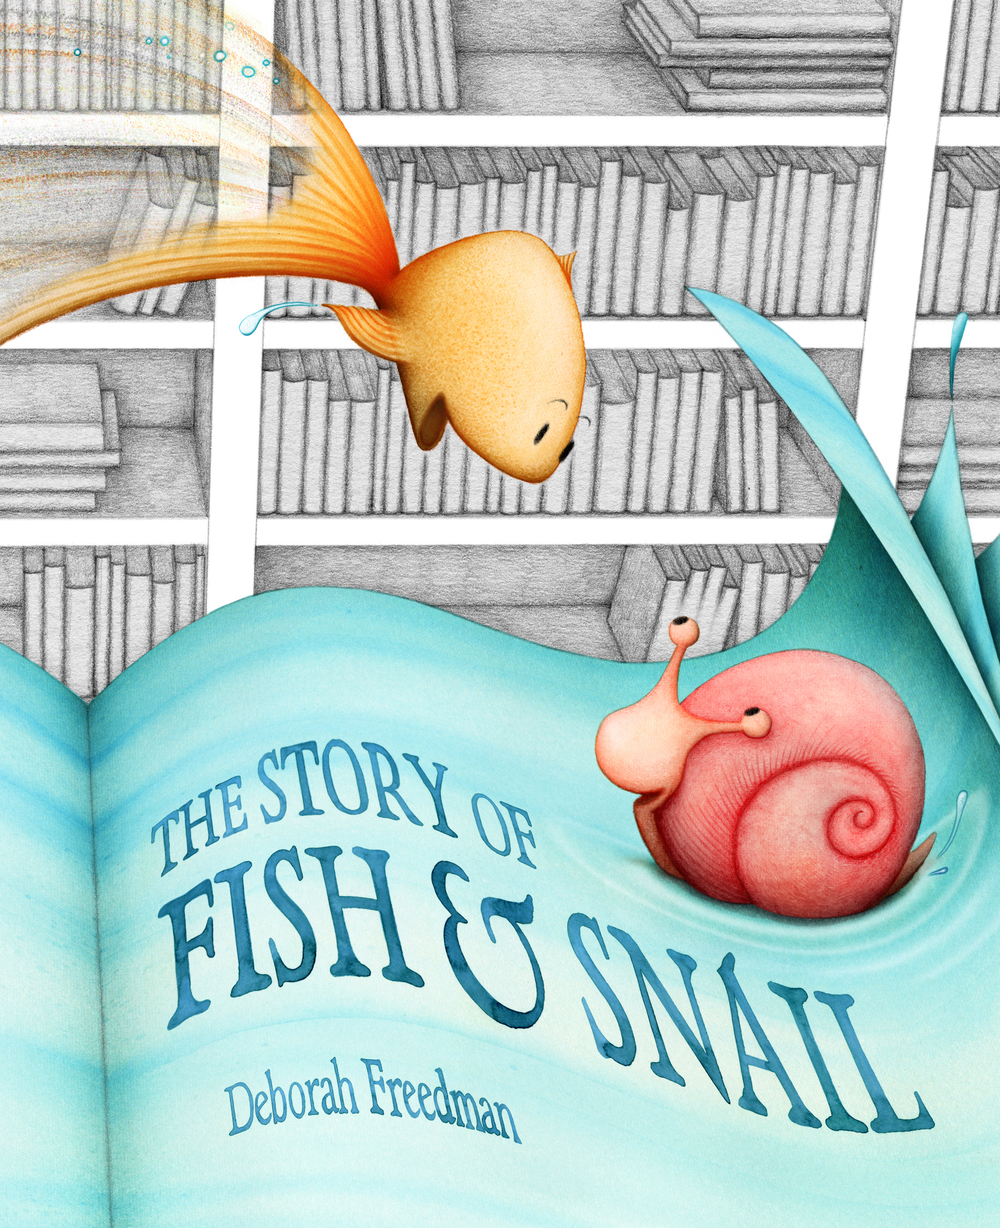 THE STORY OF FISH & SNAIL by Deborah Freedman